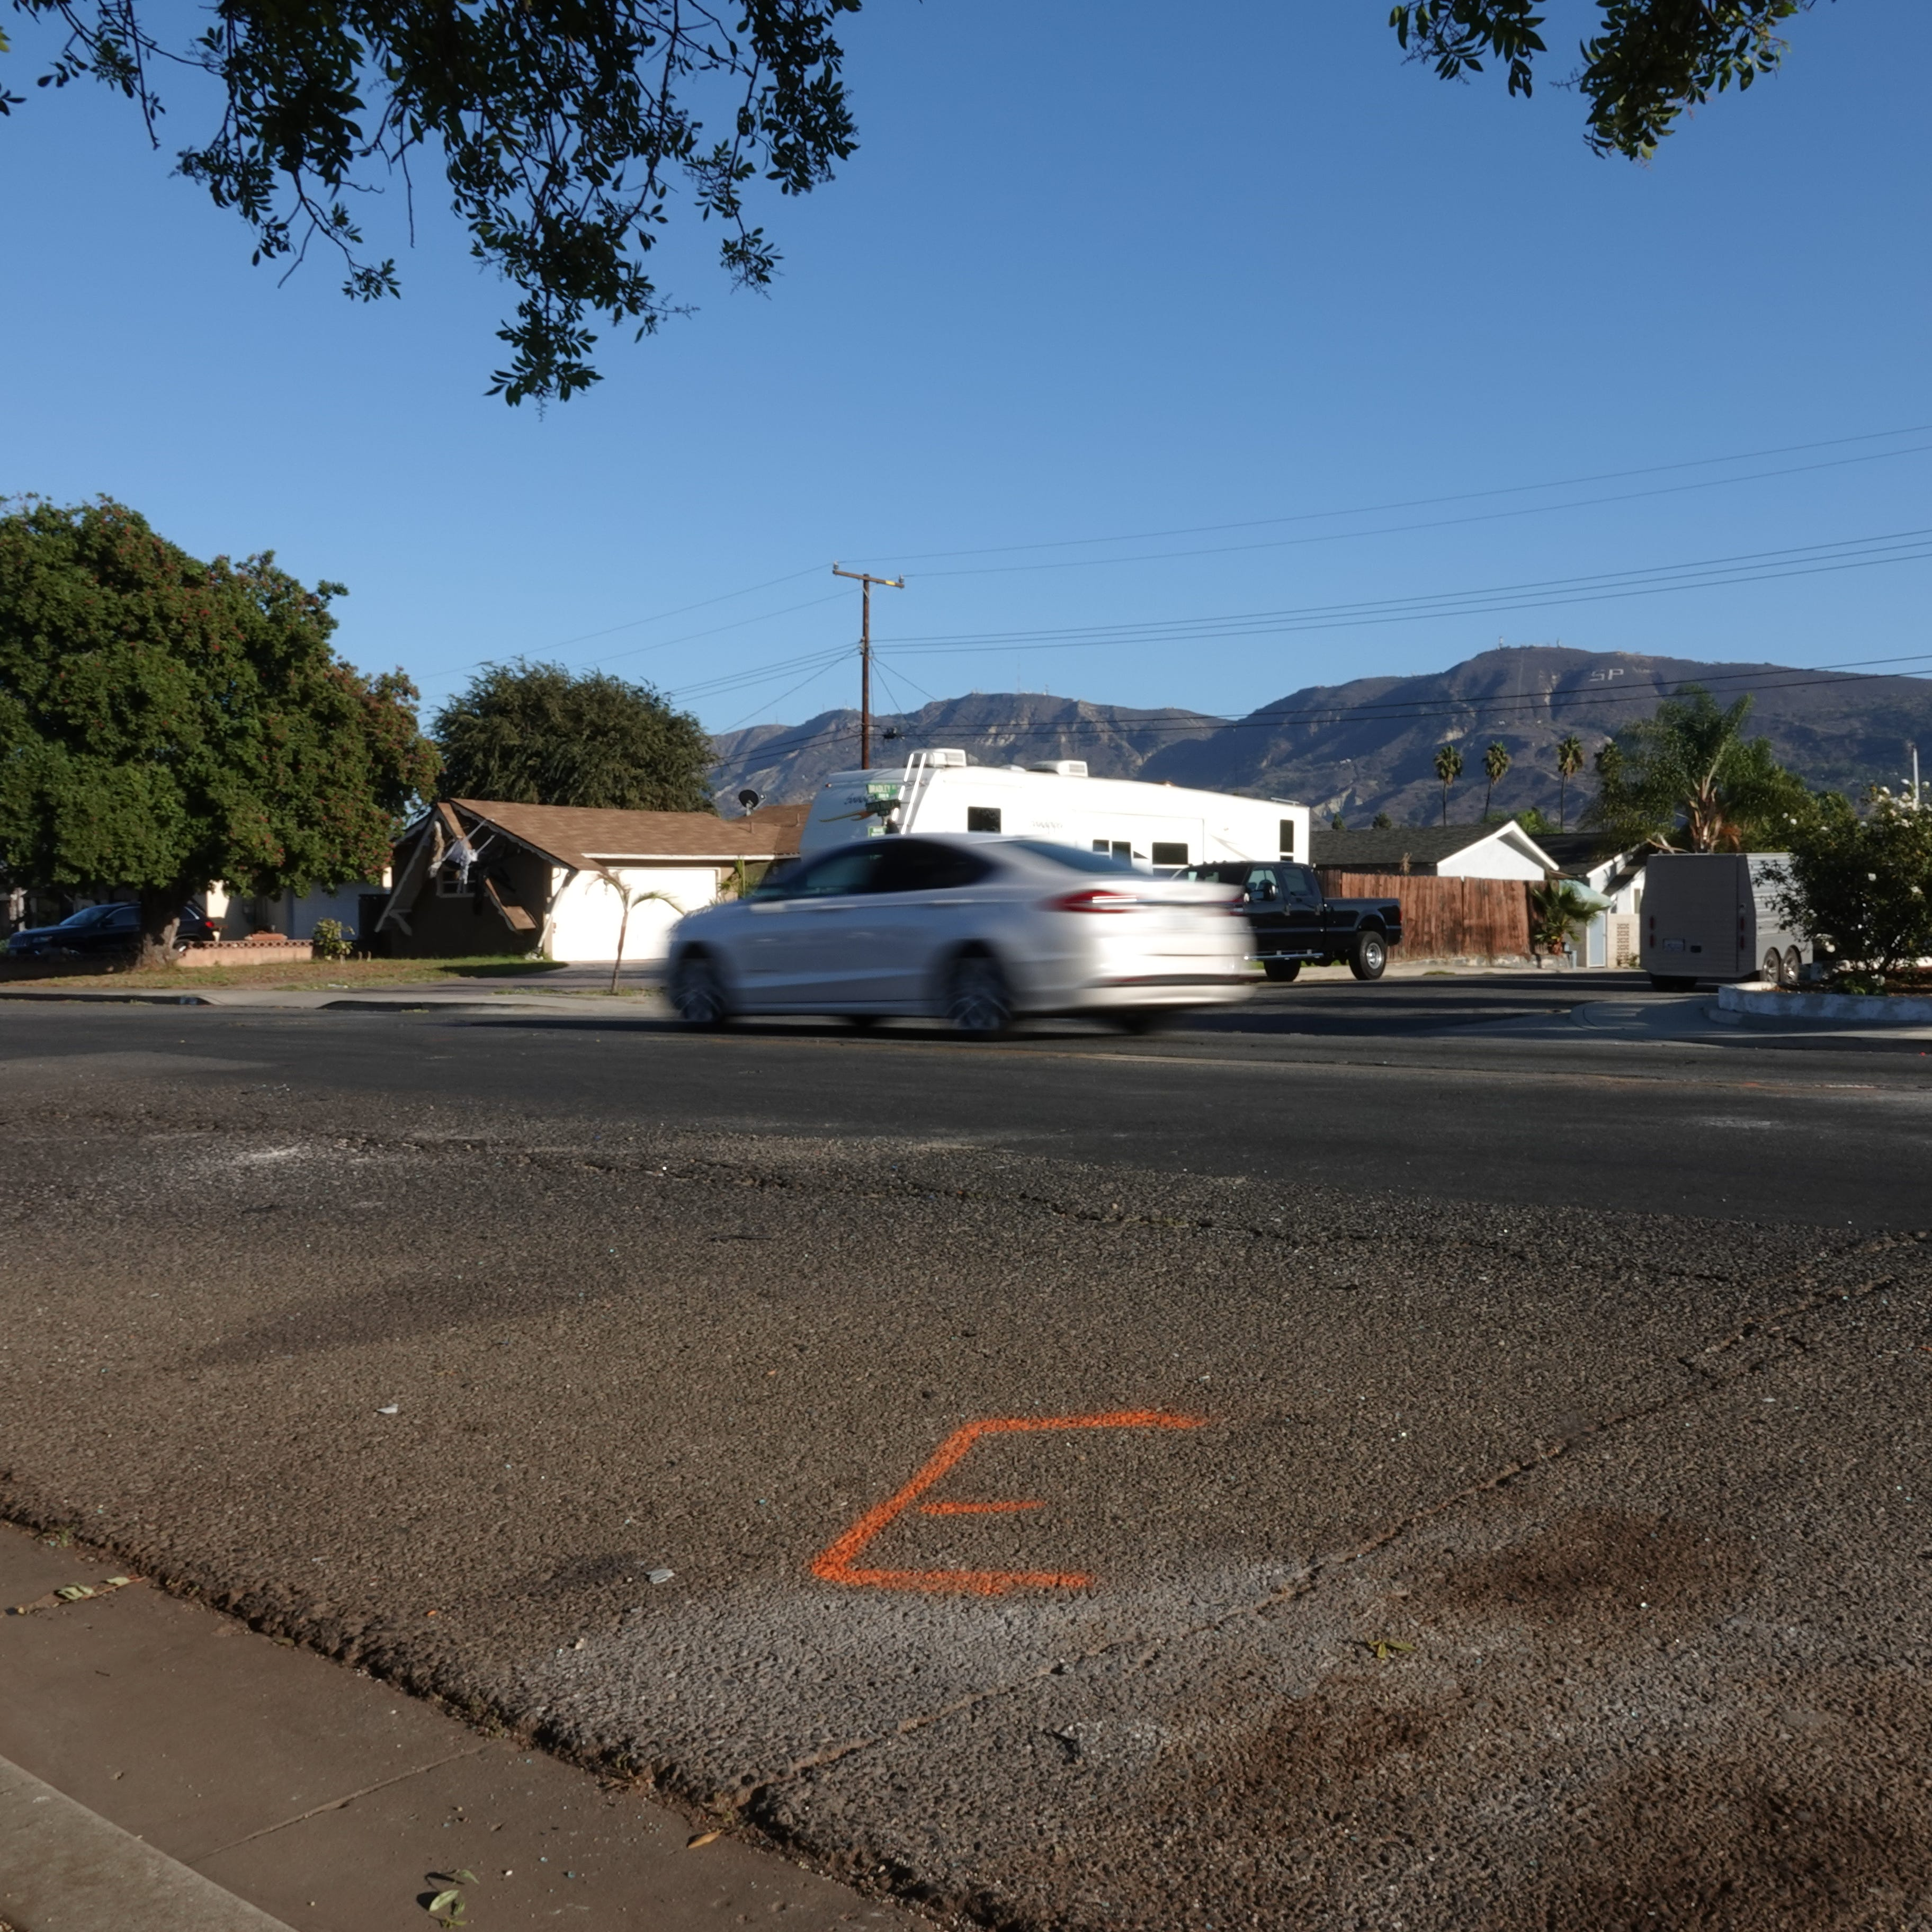 Fatal crash in Santa Paula, collisions in Thousand Oaks and near Ojai